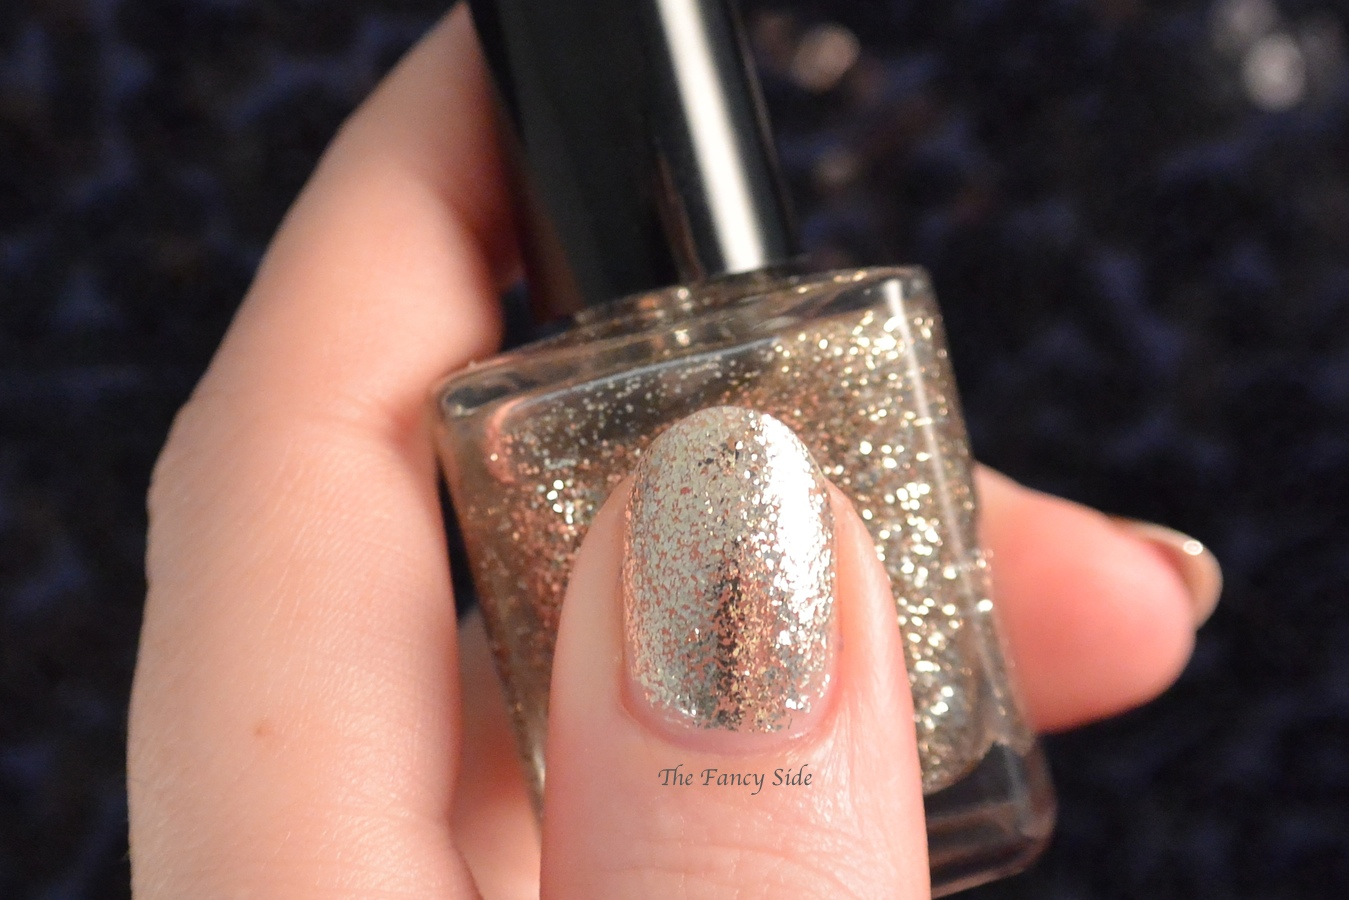 The Fancy Side: F.U.N. Lacquer Pay Day!